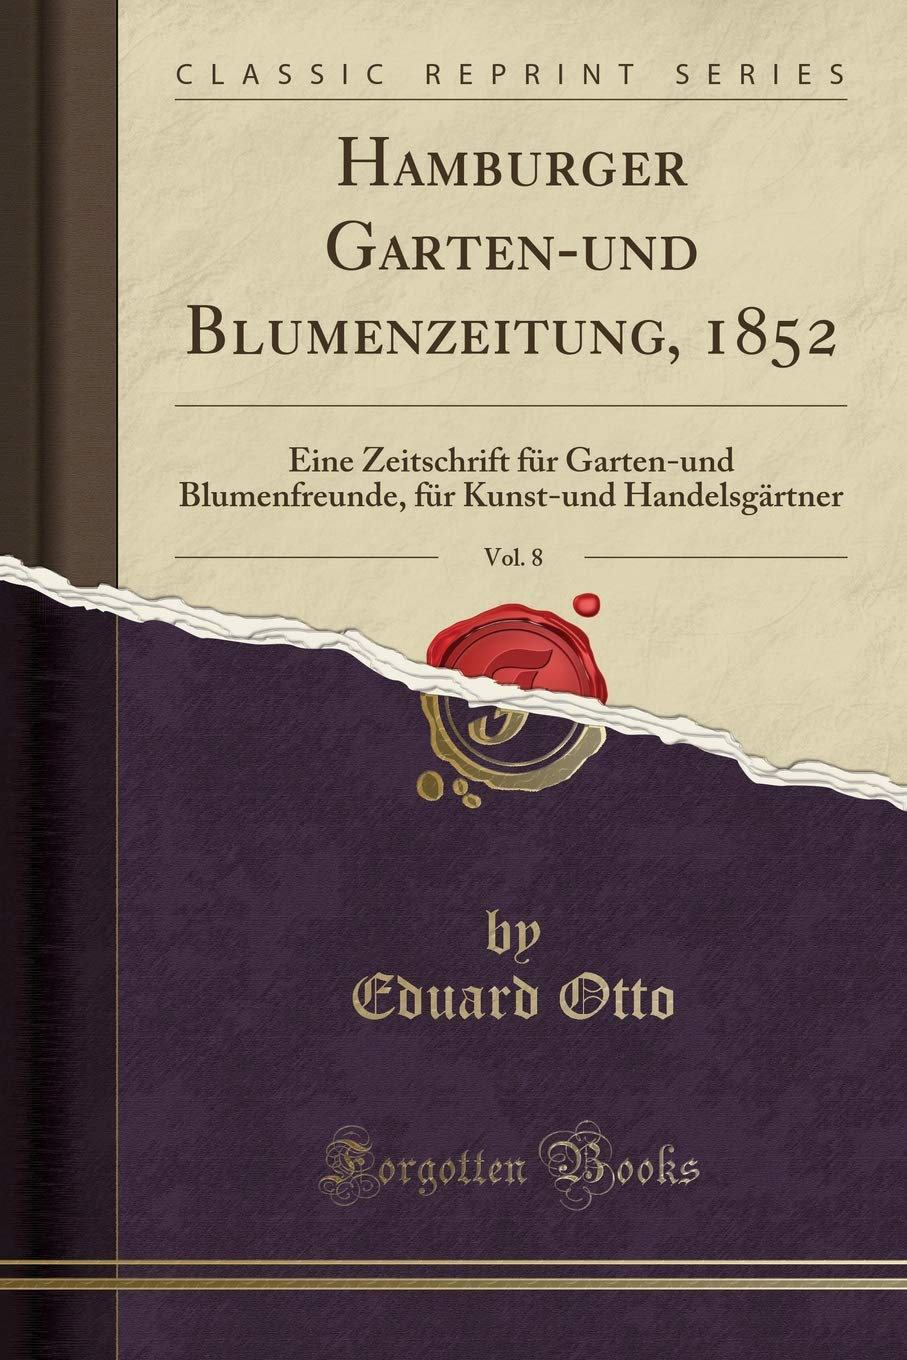 Hamburger Garten-Und Blumenzeitung, 1852, Vol. 8: Eine Zeitschrift Für Garten-Und Blumenfreunde, Für Kunst-Und Handelsgärtner (Classic Reprint) (German Edition) by Forgotten Books